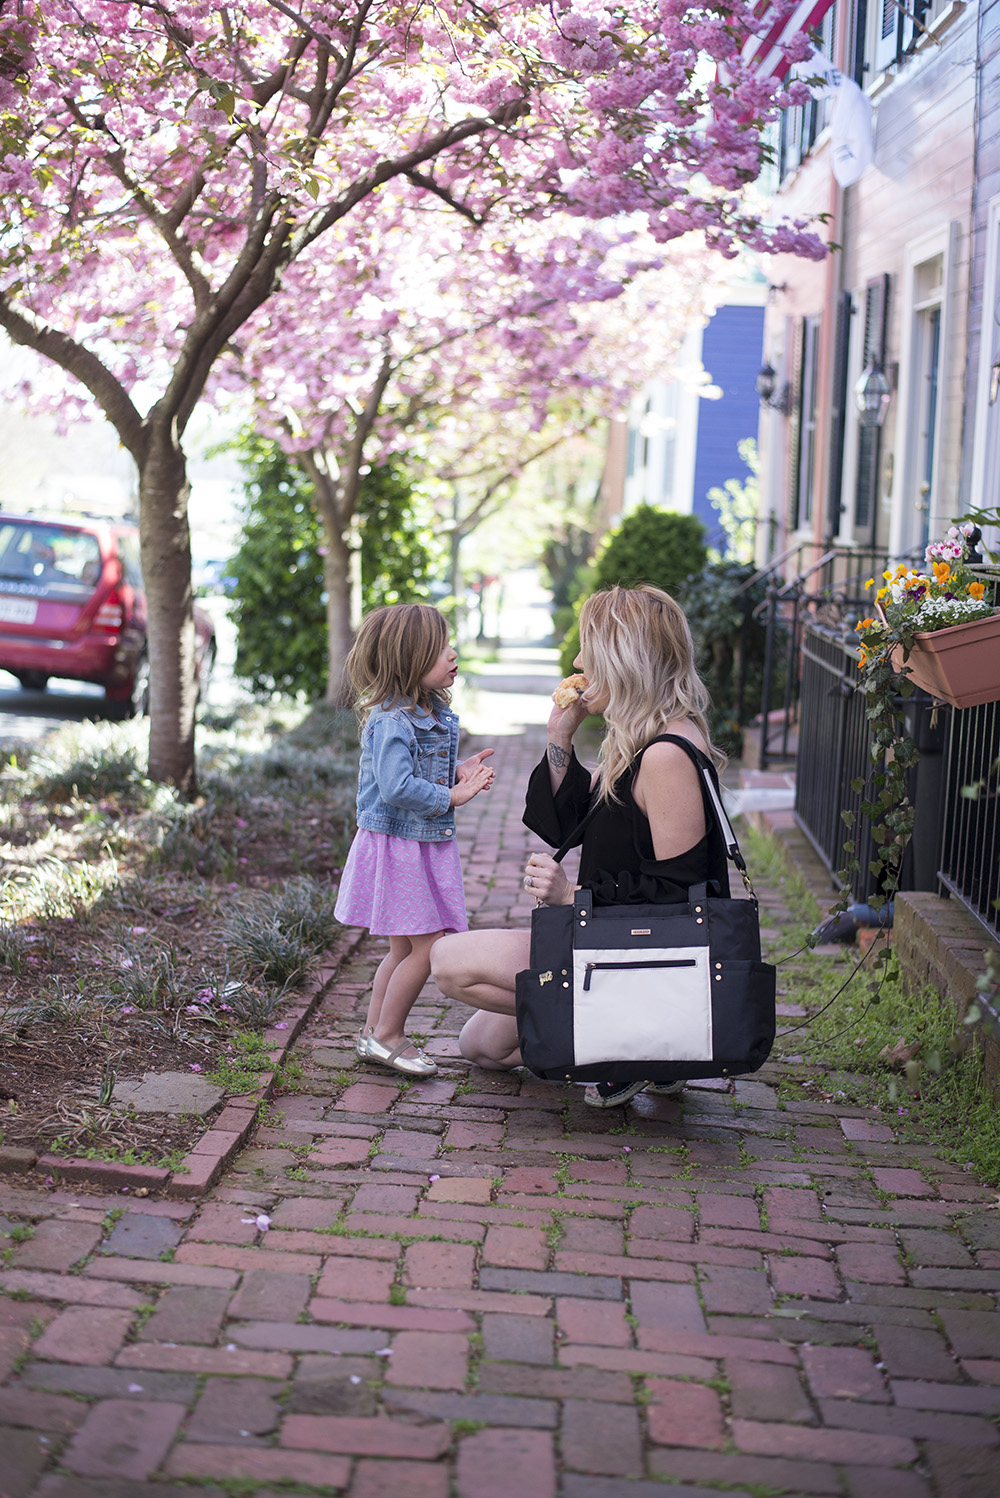 Why I still carry a diaper bag for my preschoolers: Want to know the secret to going ANYWHERE with busy preschoolers. Read on :)